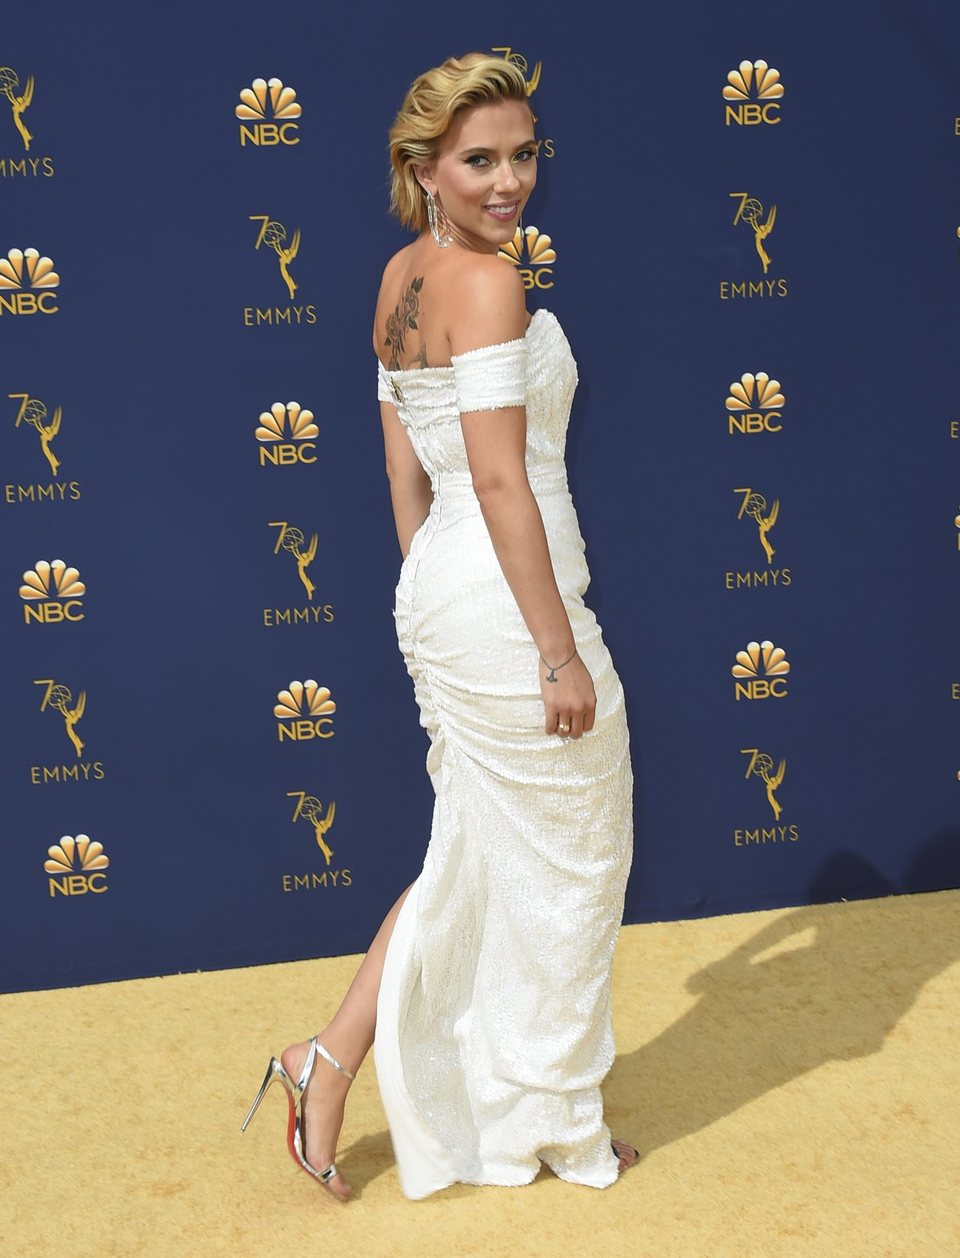 Scarlett Johansson at the Emmys 2018 red carpet